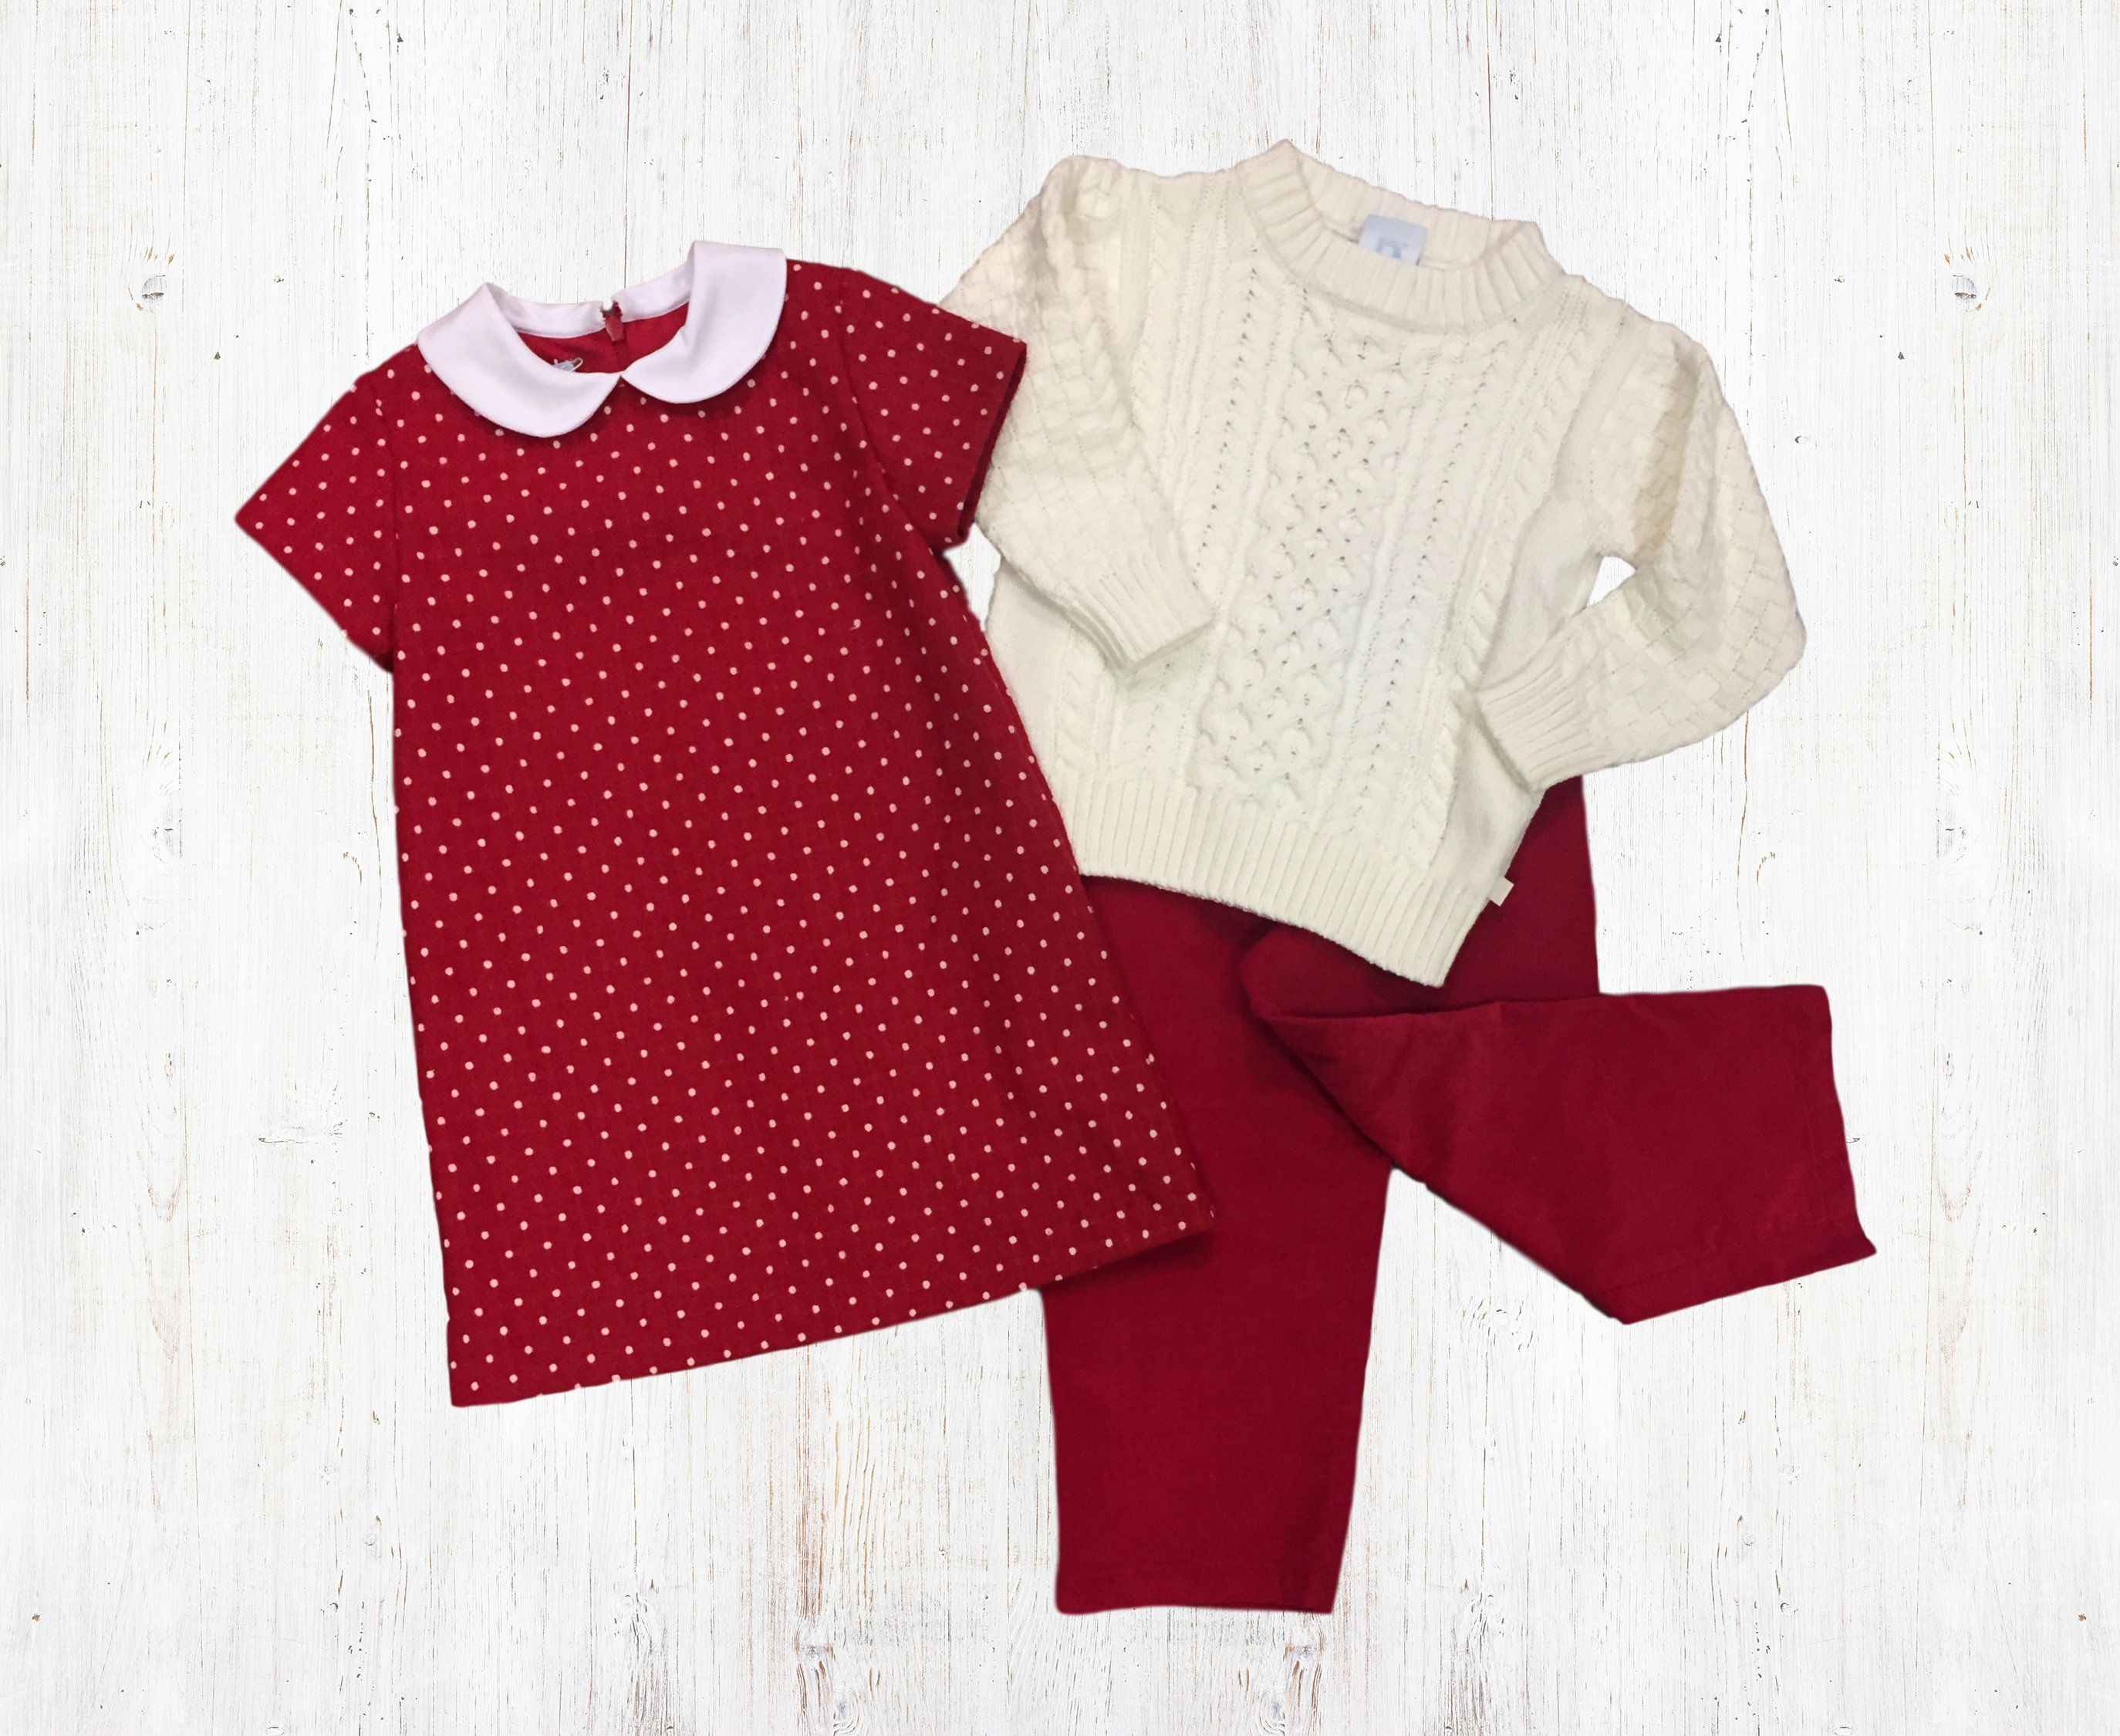 Bella Bliss Wool Dress And The Bella Bliss Milo Pullover Will Make